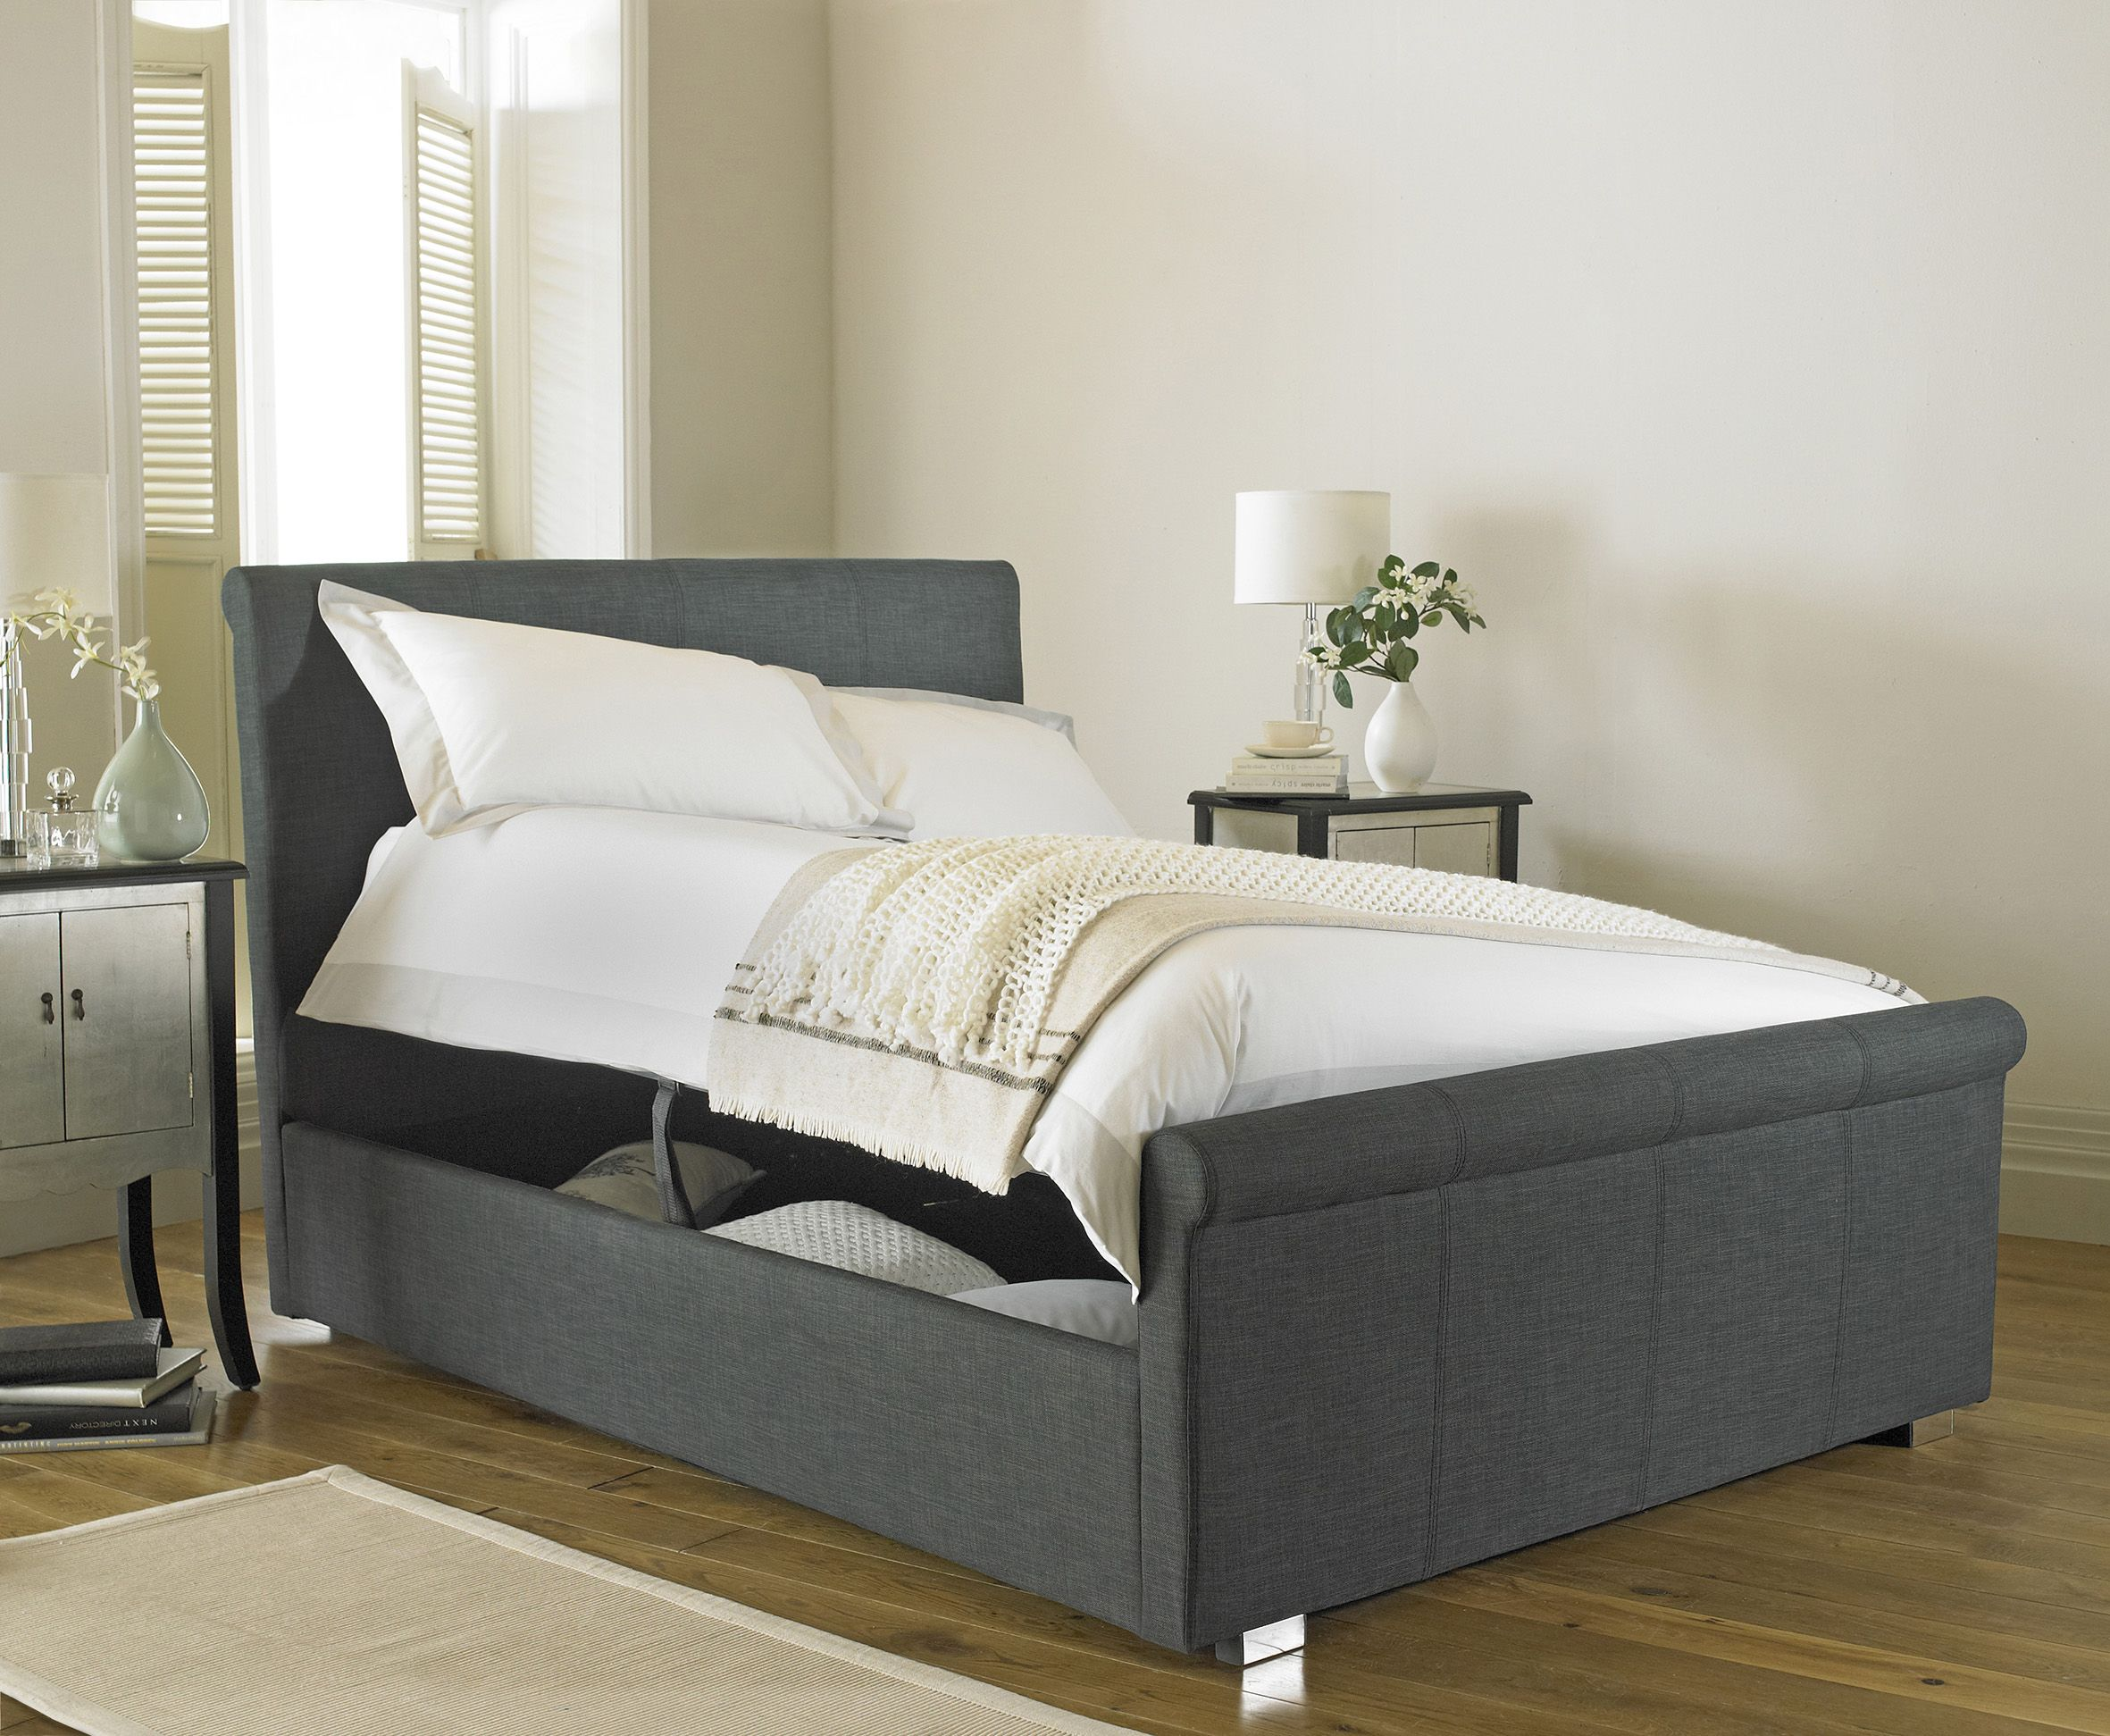 Pleasing Vienna Side Opening Ottoman Double Bed Upholstered In Grey Gmtry Best Dining Table And Chair Ideas Images Gmtryco